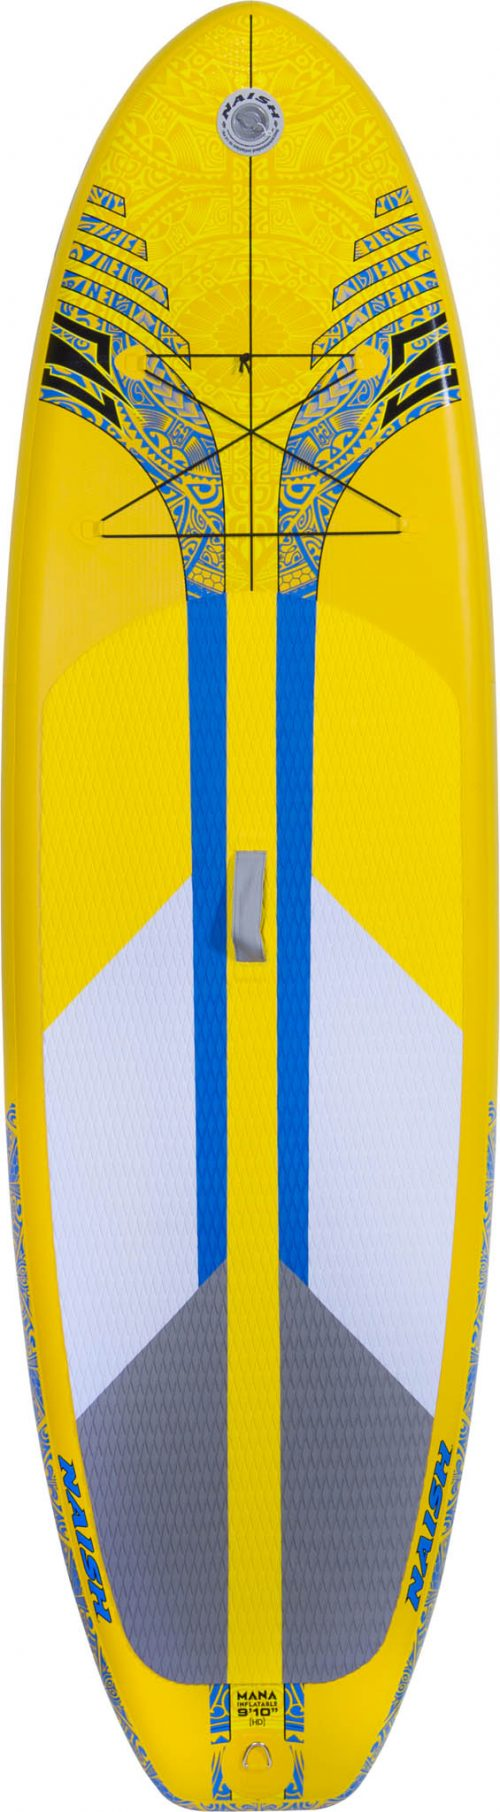 2017 Naish Mana Inflatable SUP